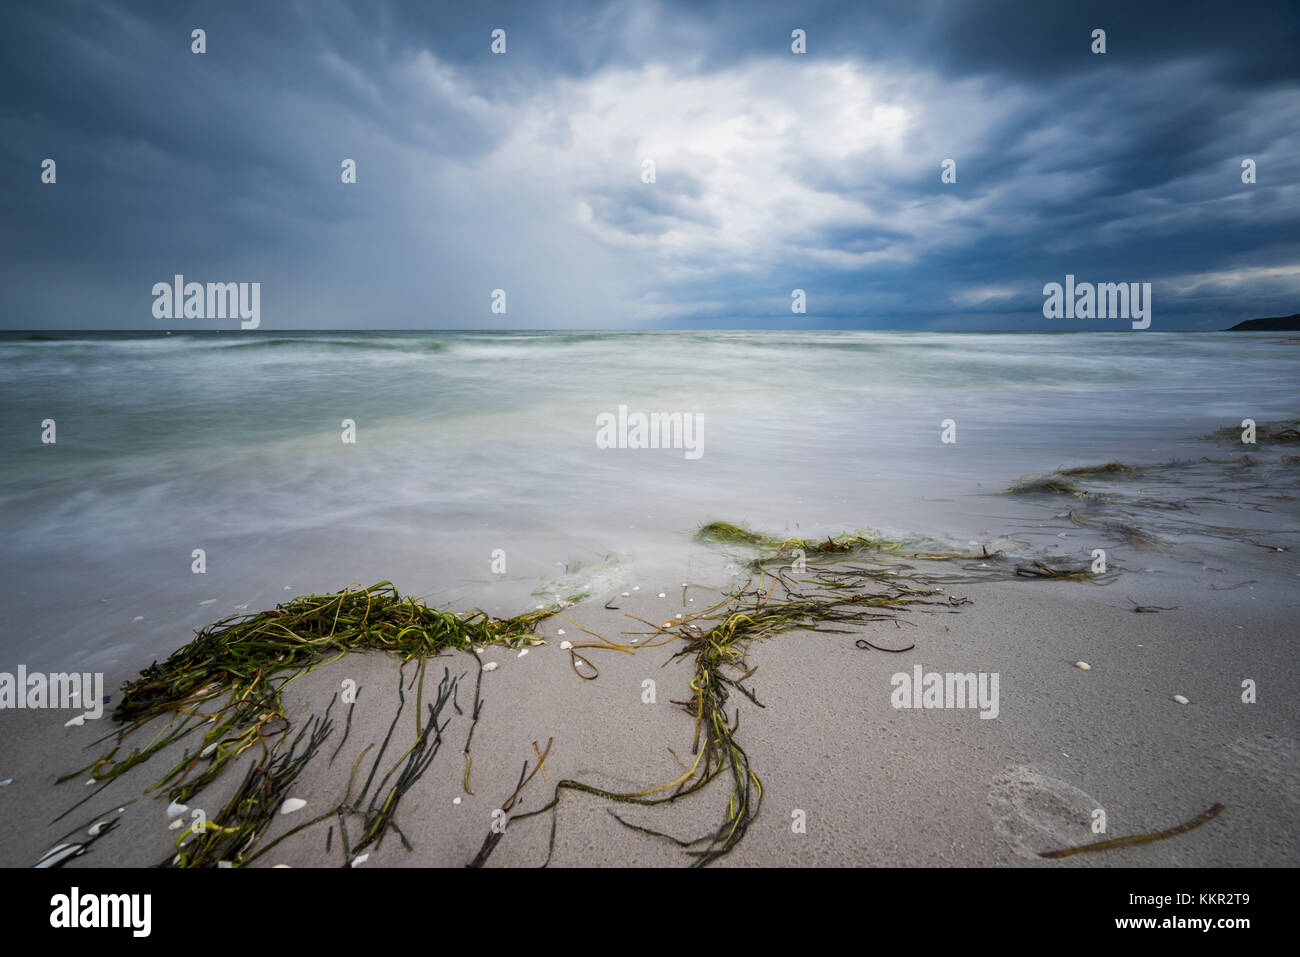 Stormy atmosphere on the Baltic Sea, moving water with whitecaps, long exposure - Stock Image